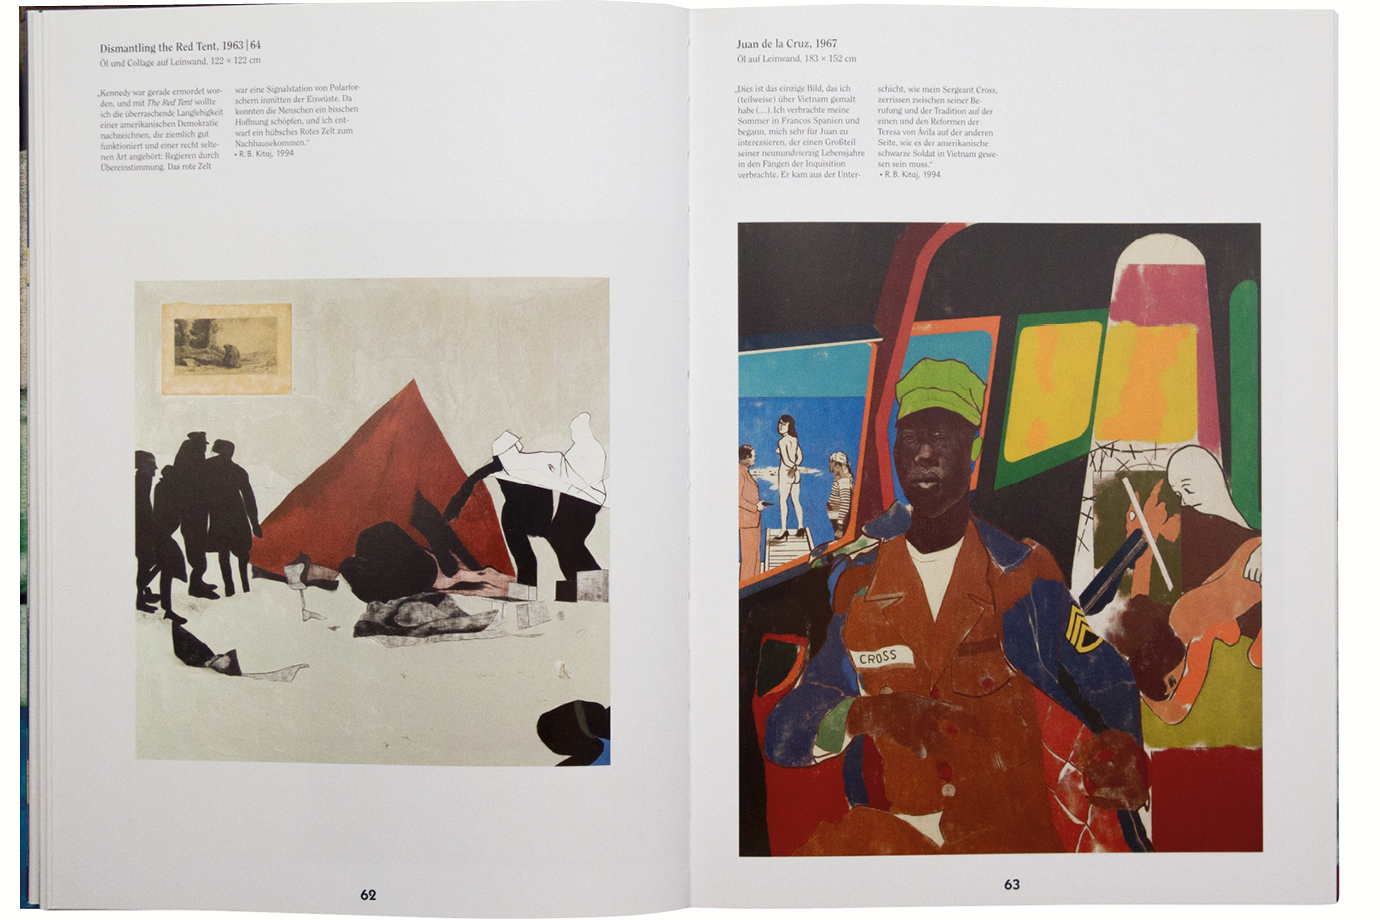 http://e-o-t.de/wordpress/wp-content/uploads/2017/07/eot-2012-Kitaj-Book-10.jpg